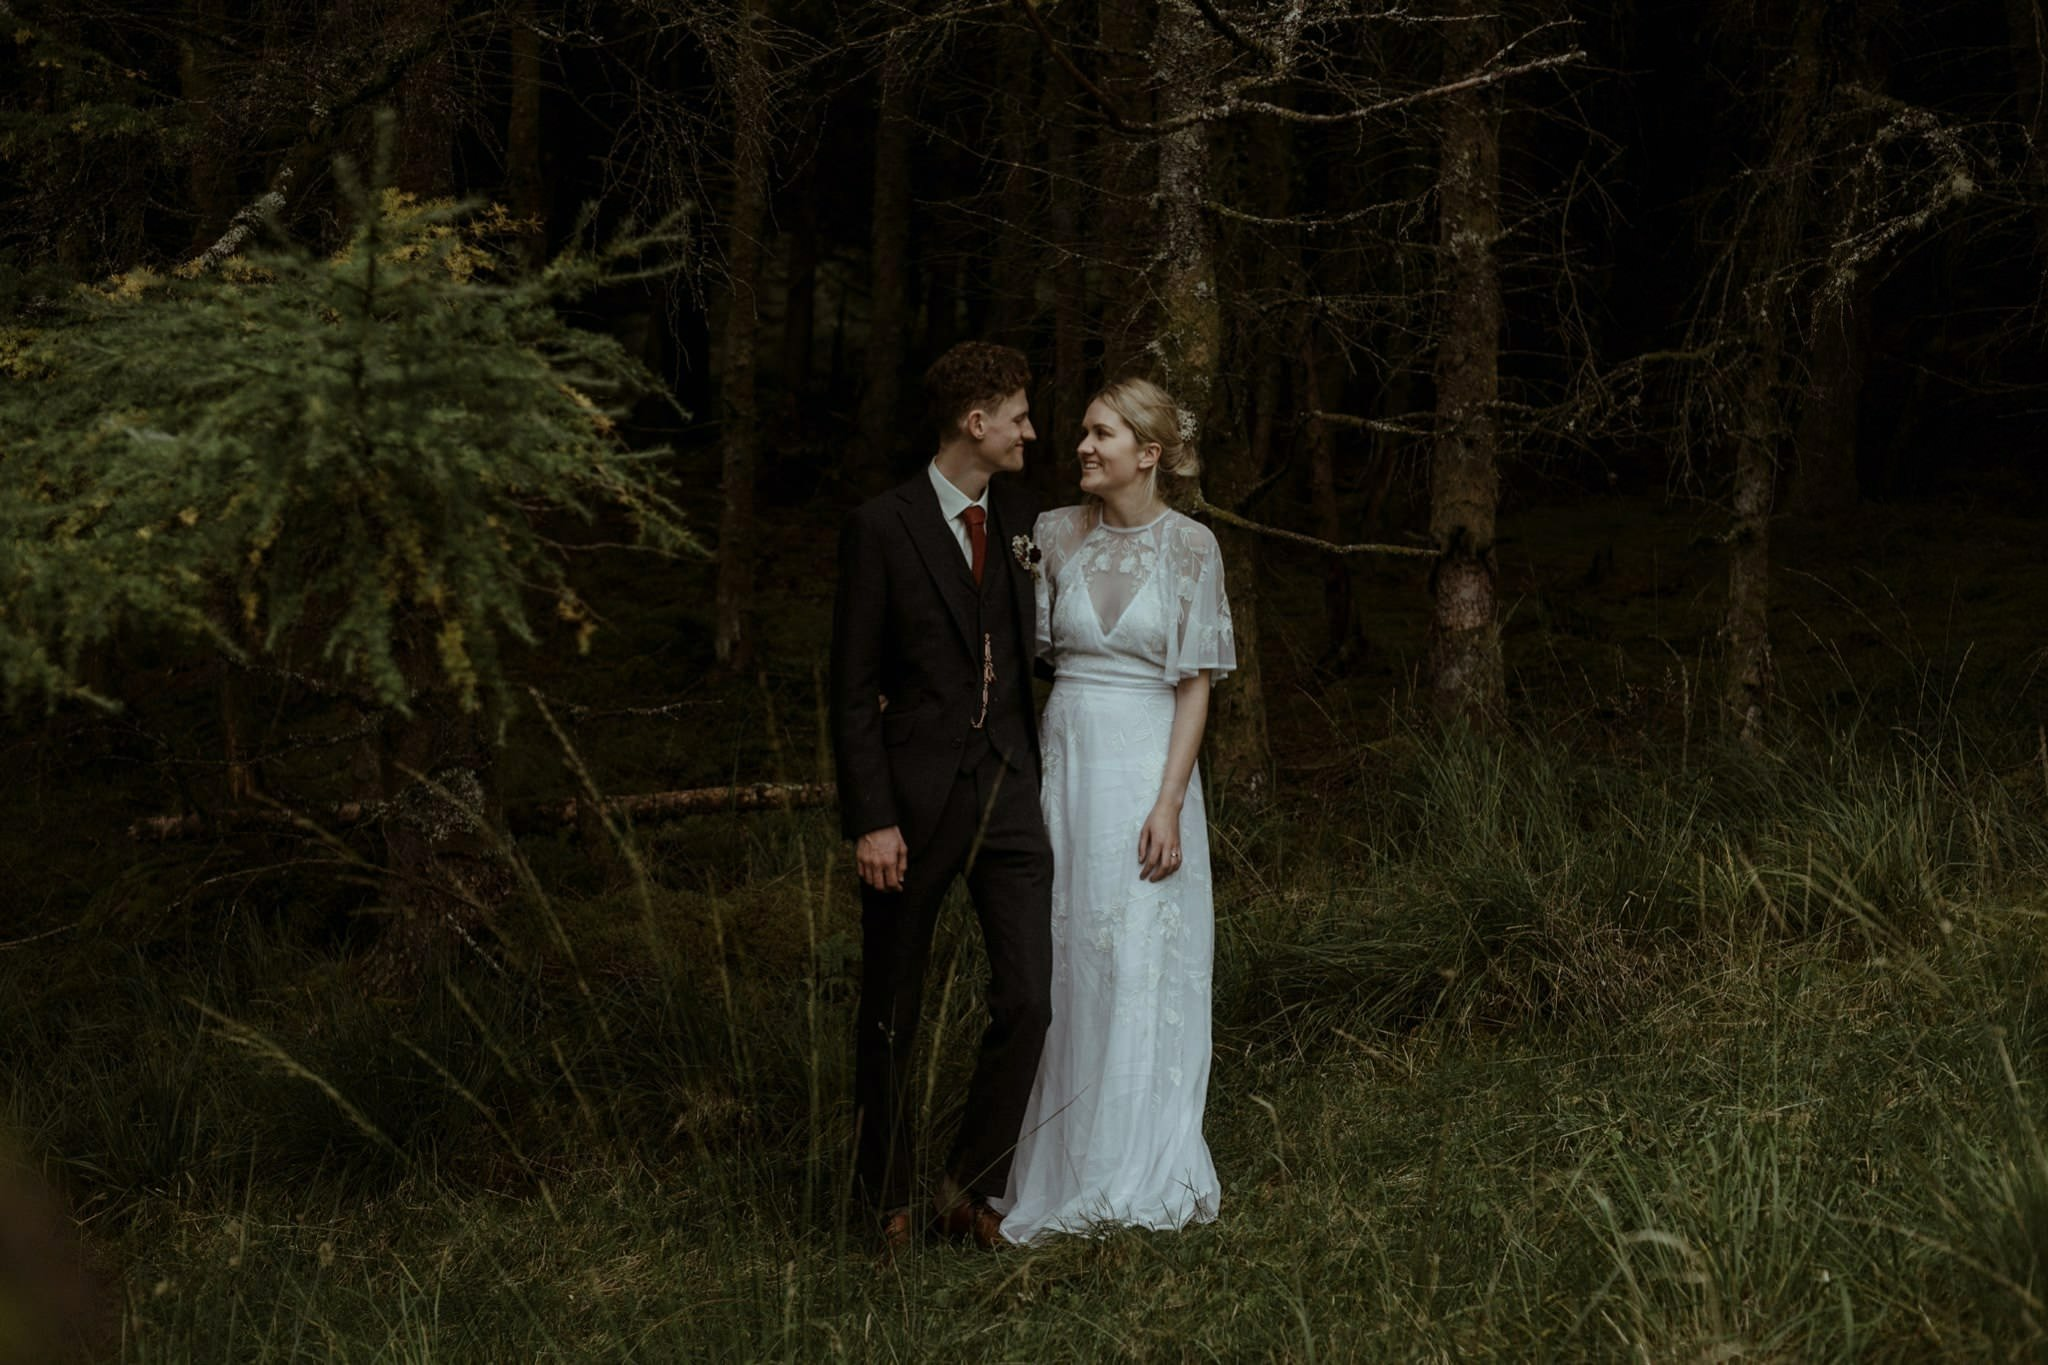 Bride and groom in Glen Etive after their Glencoe elopement wedding in Scotland